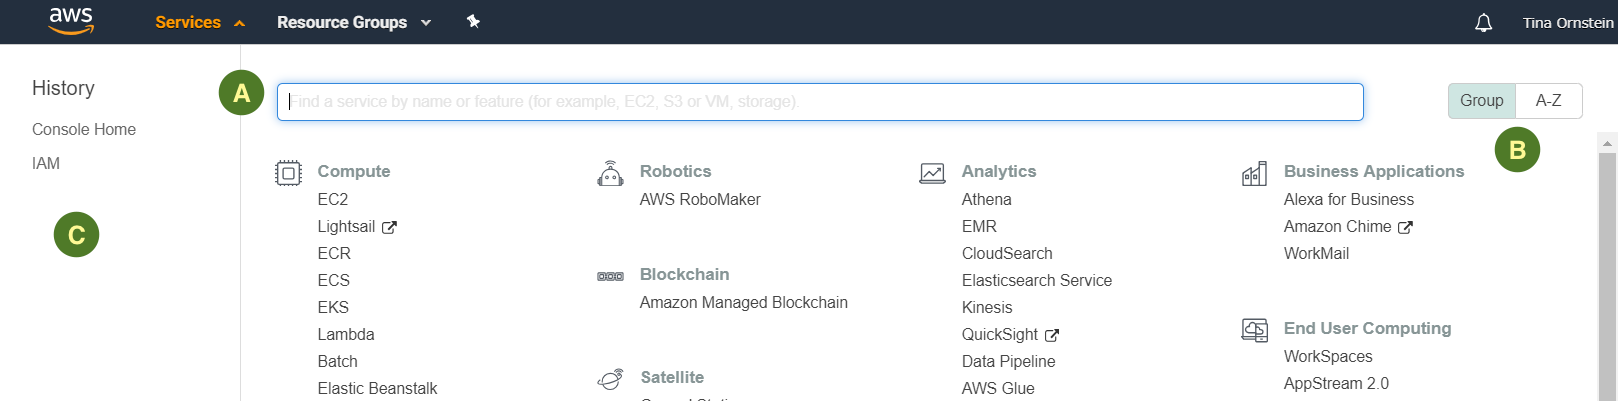 Your Trusted Cloud Friend: The AWS Management Console - The Media